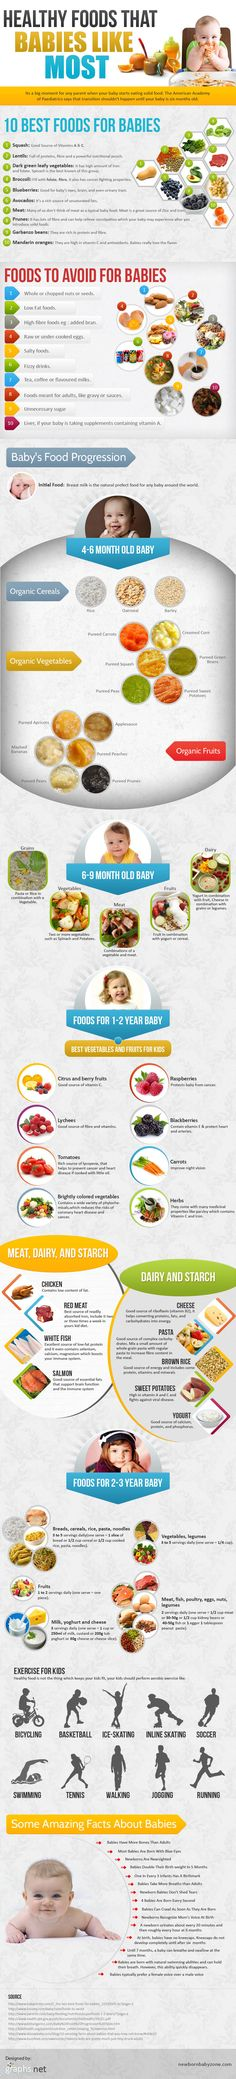 Healthy foods according to babys age